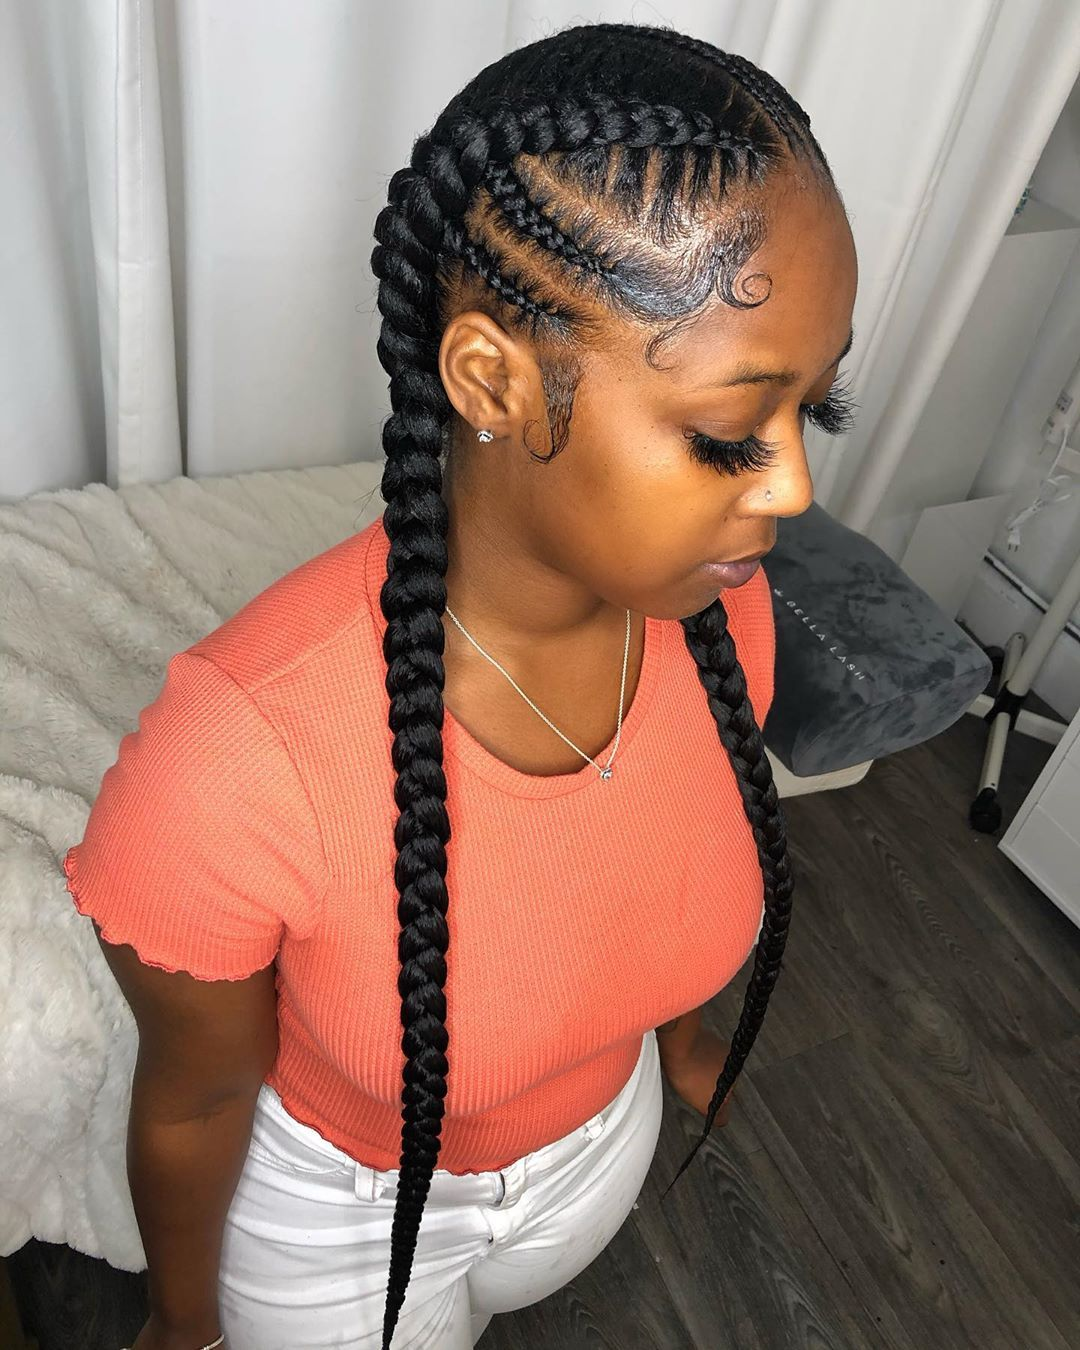 Pin By Patrice B On My Hair Skin Braids For Black Hair Natural Hair Styles Hair Styles